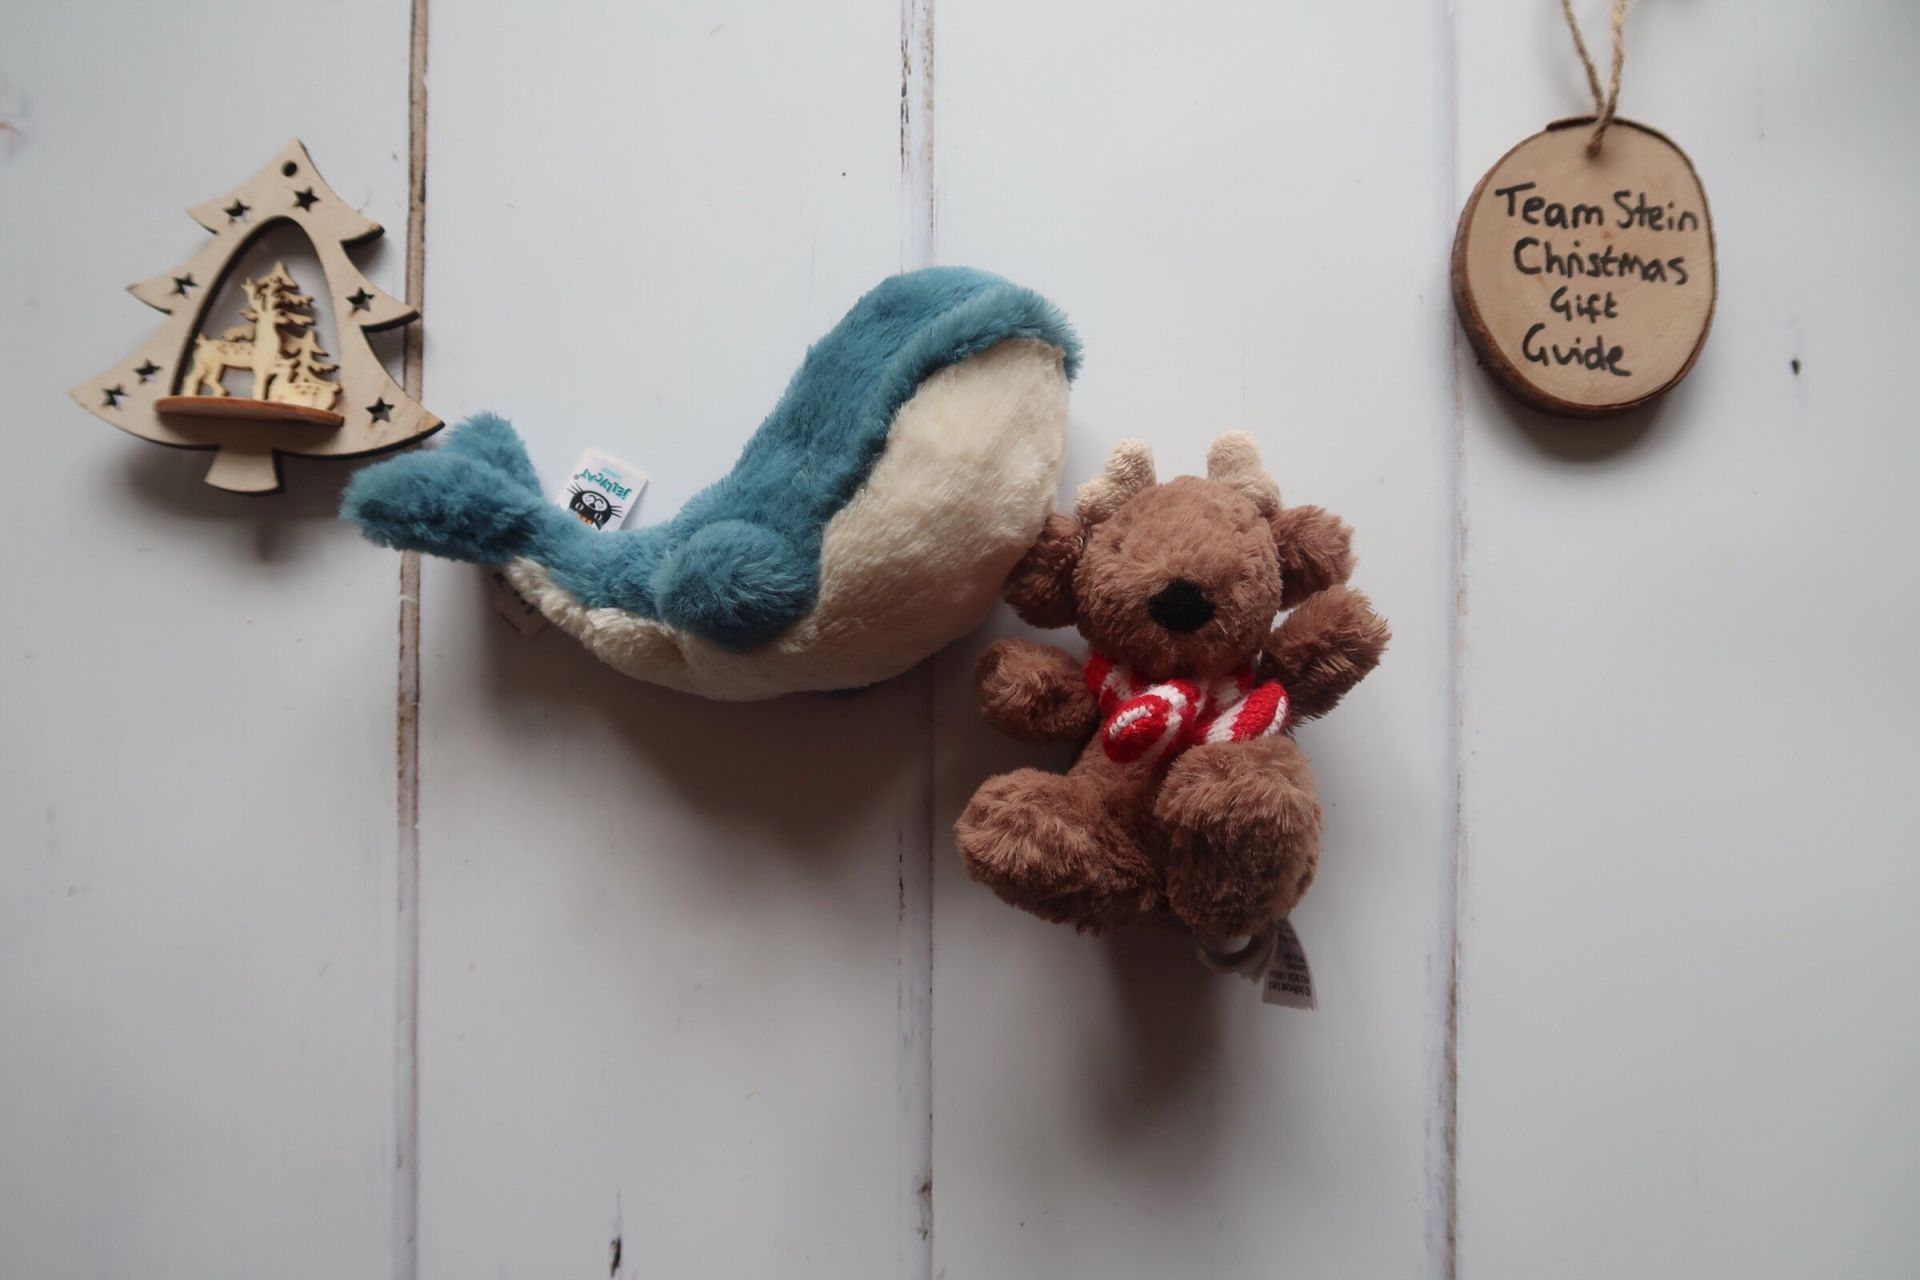 a stuffed toy whale and stuffed reindeer